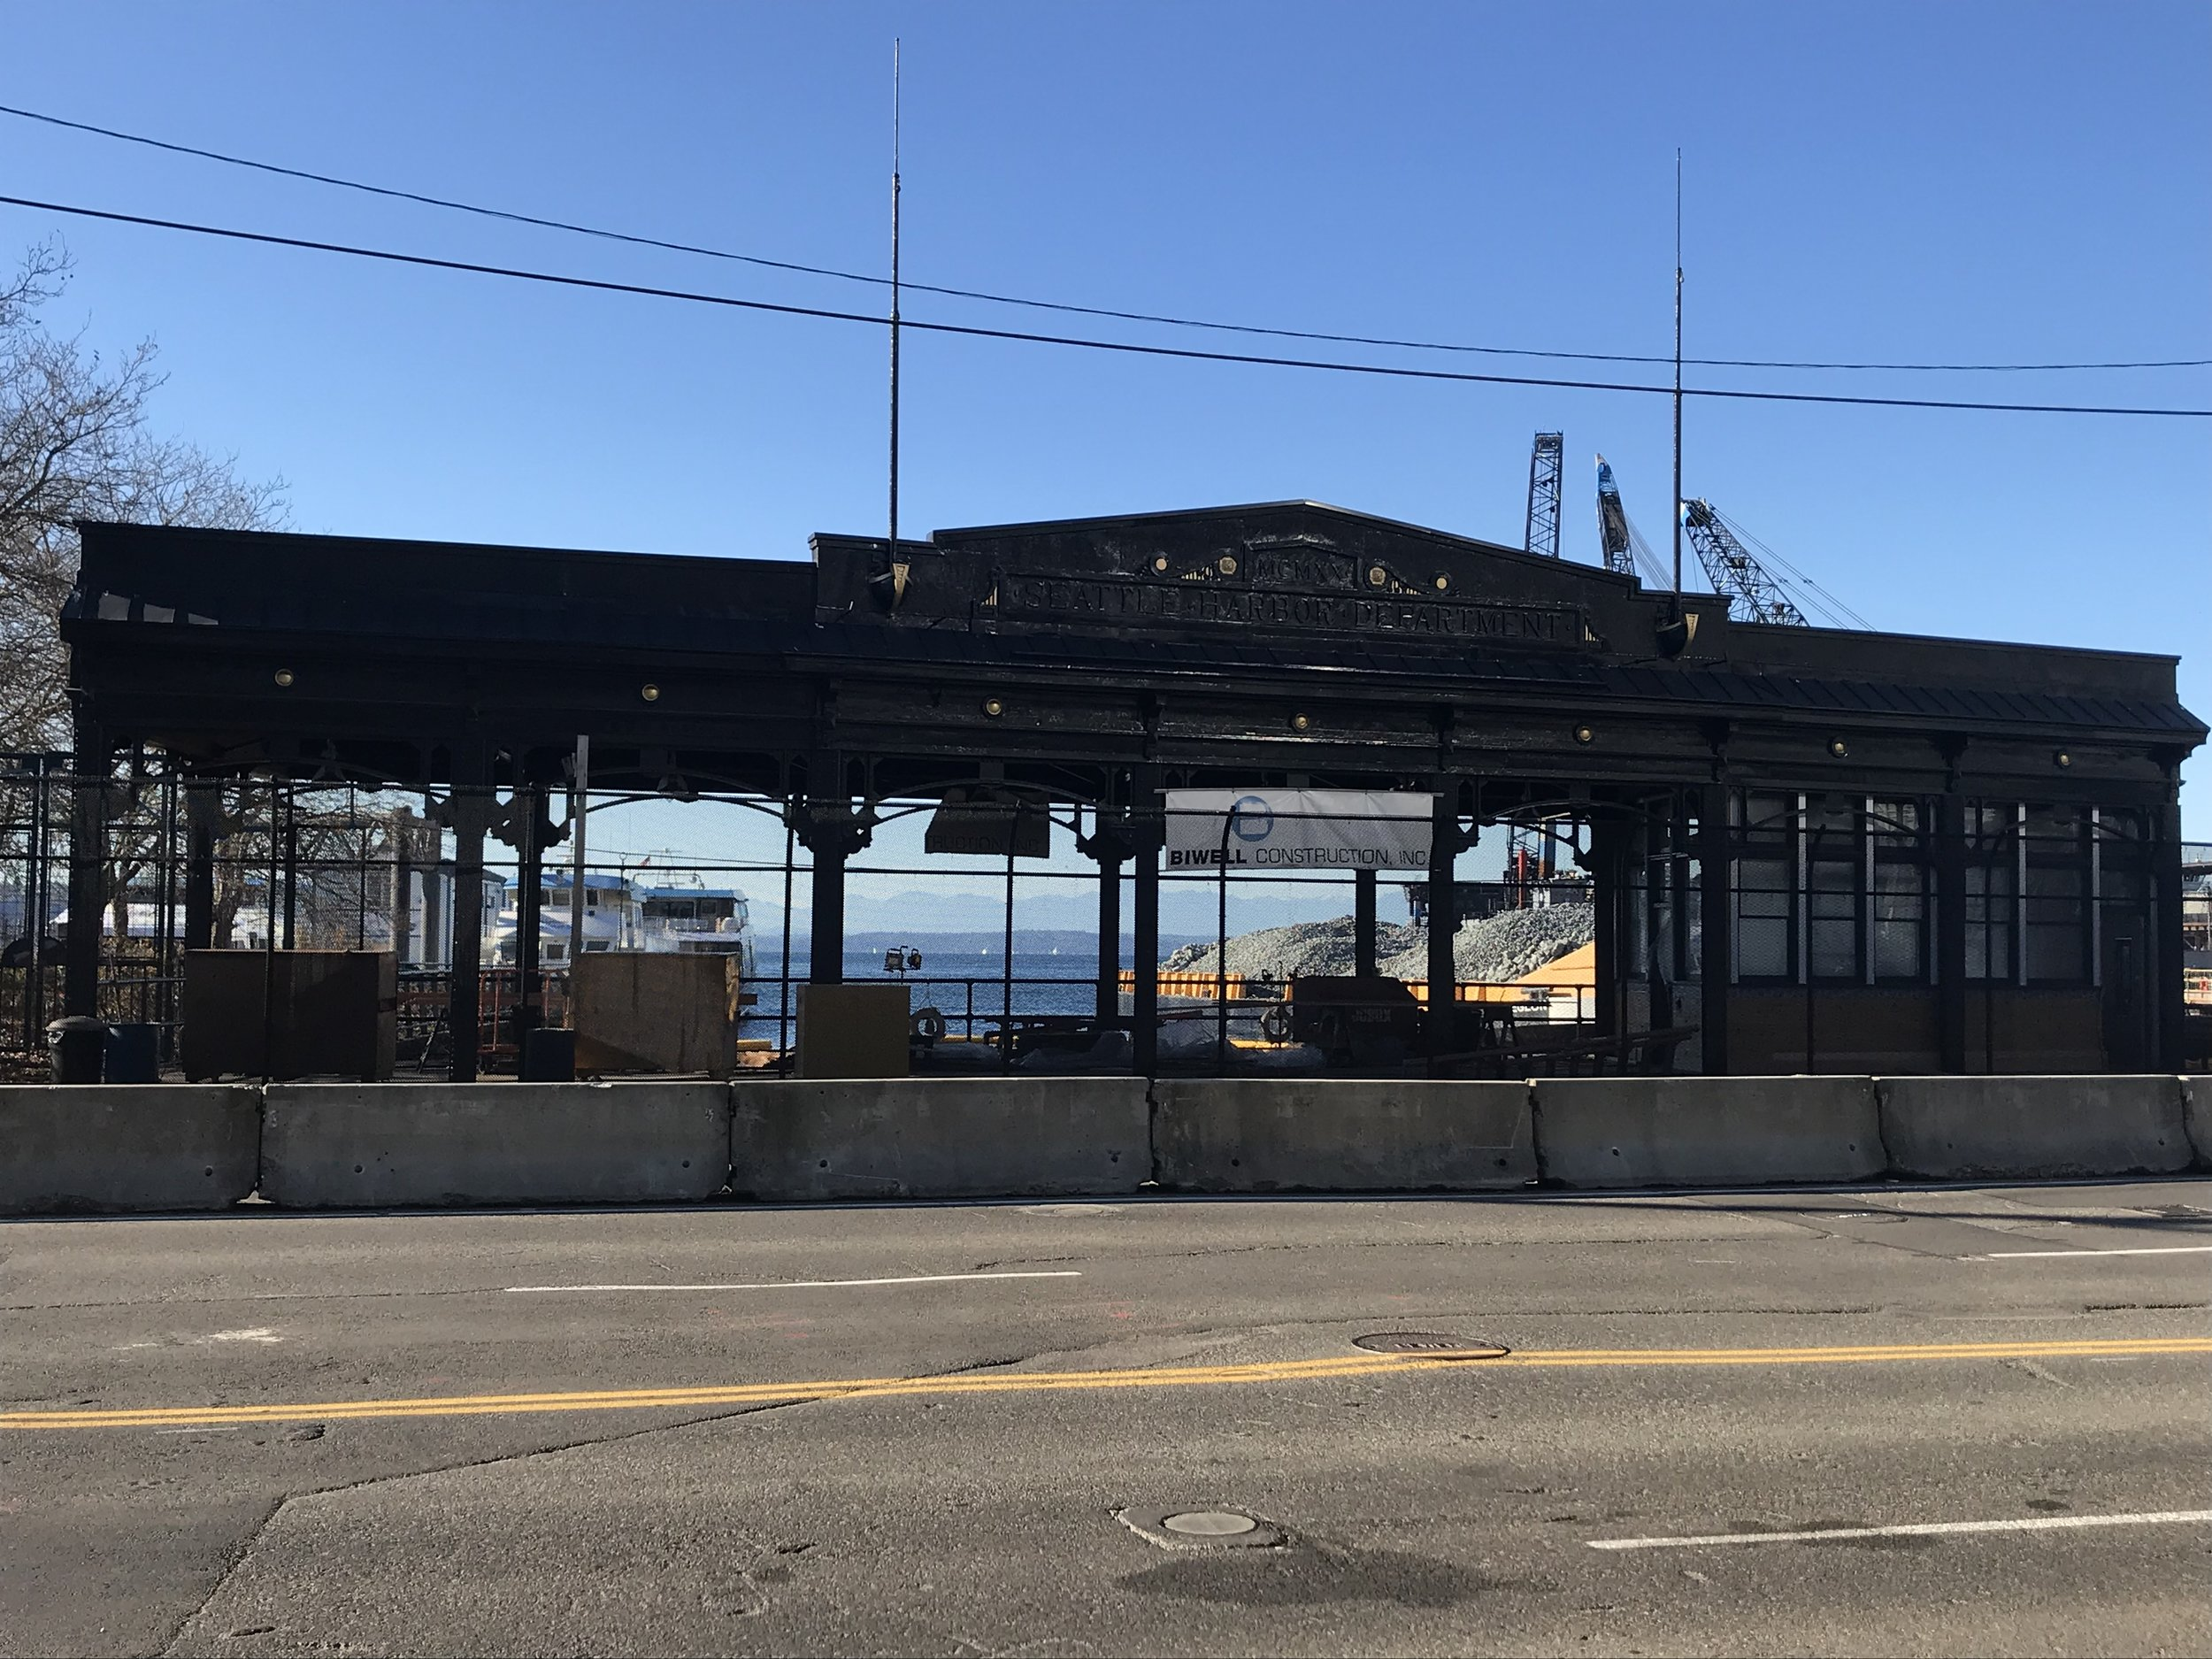 Restoration of the Washington Street Public Boat Landing pergola, which was built in the same style as the iron pergolas of Pioneer Square.